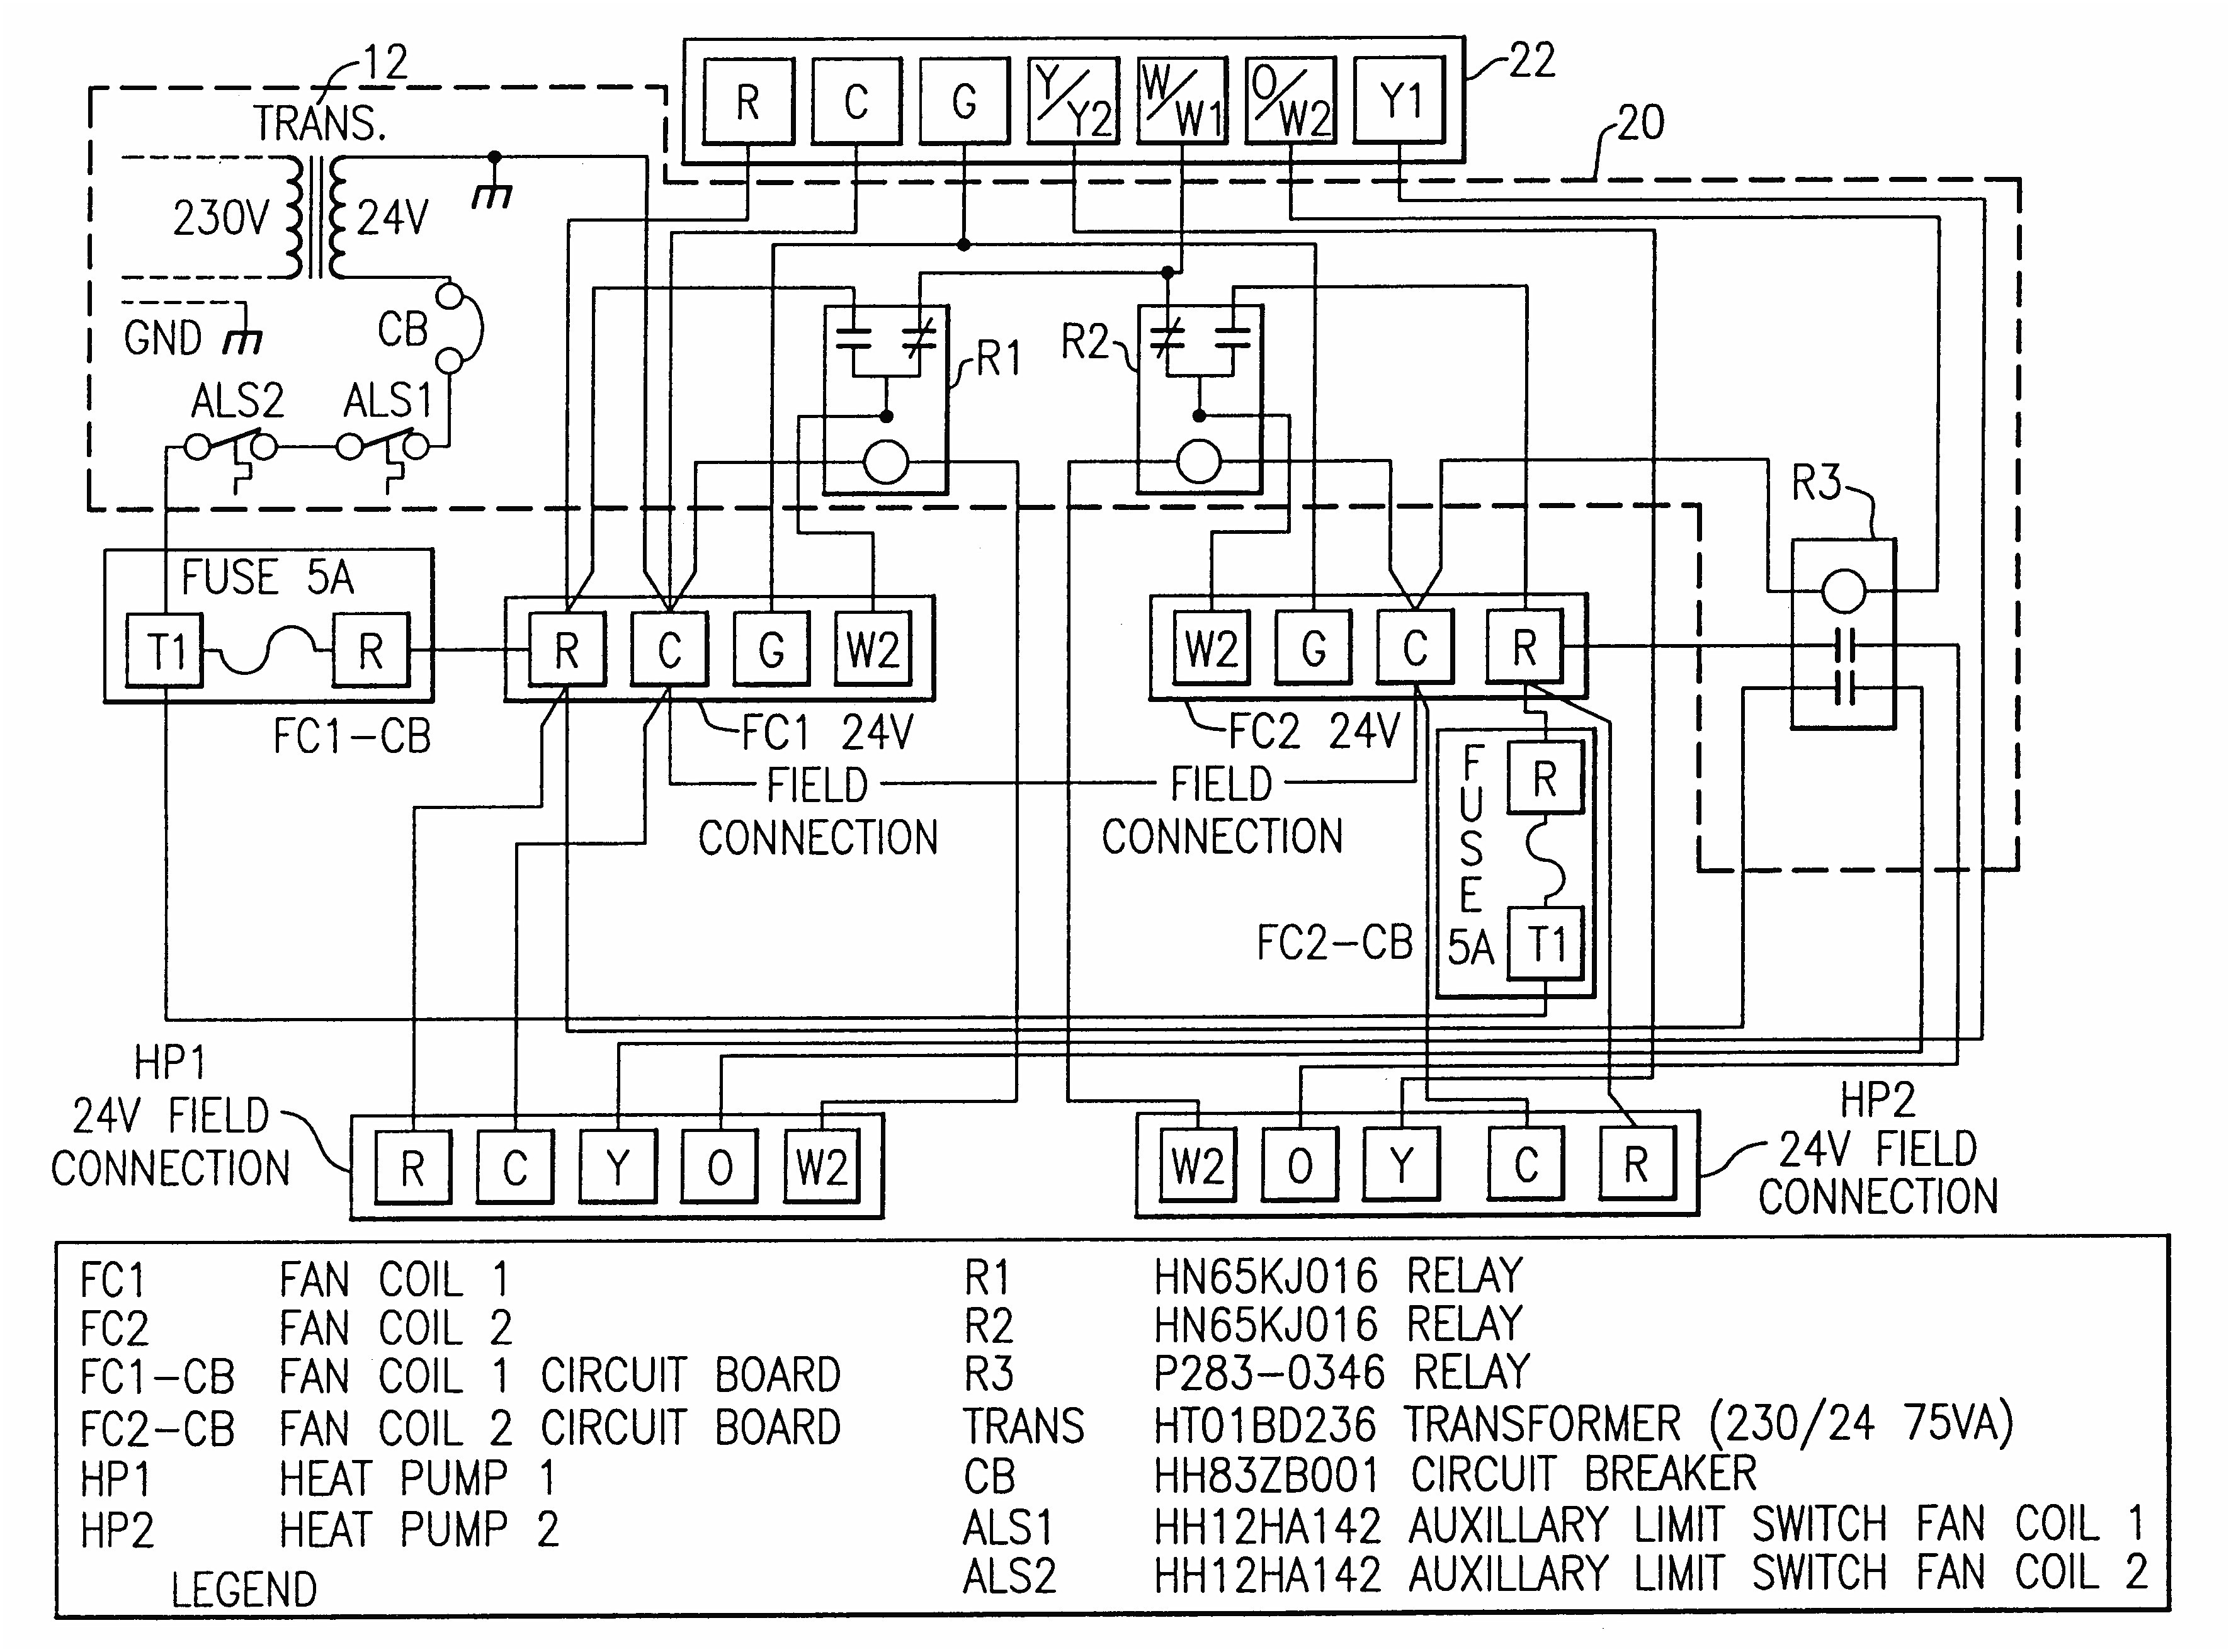 Carrier Infinity thermostat Installation Manual | AdinaPorter on